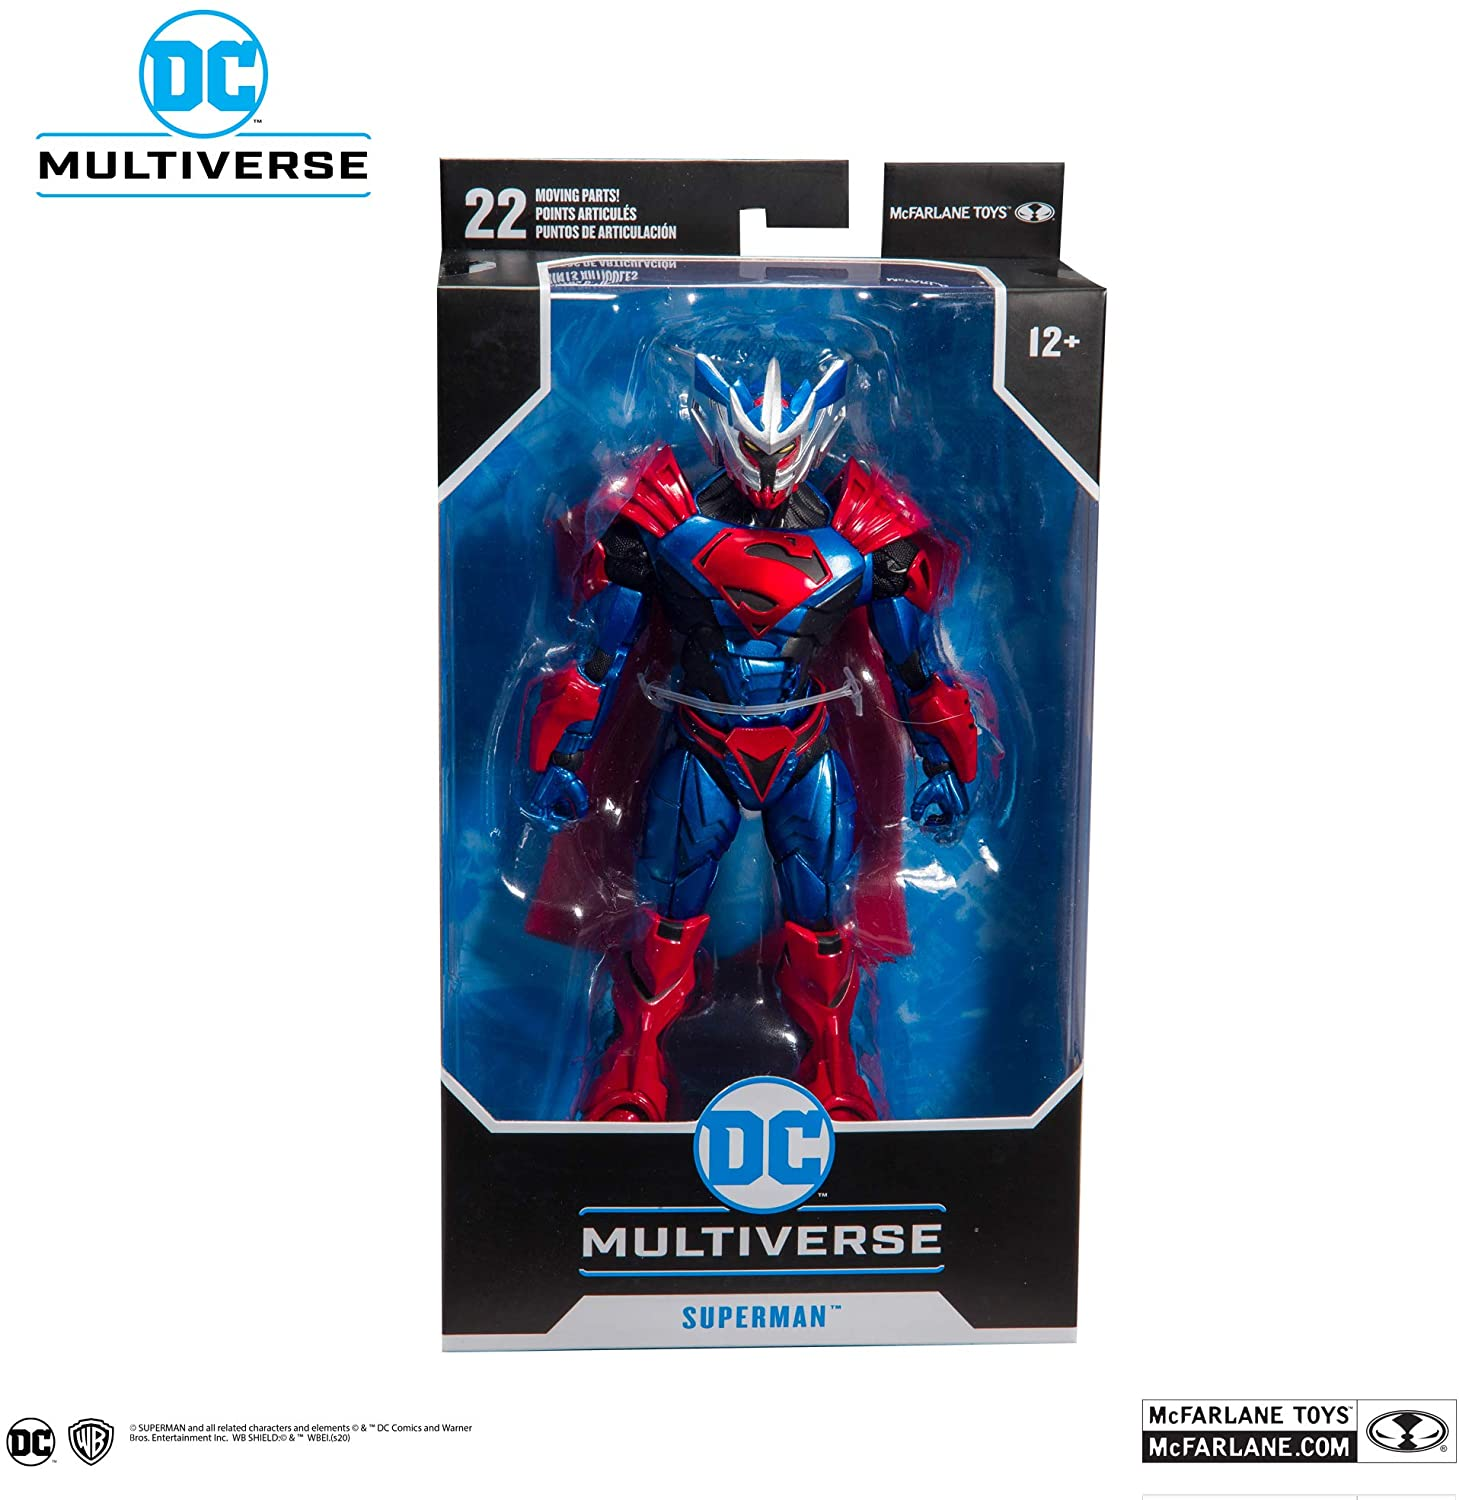 McFarlane Toys - DC Multiverse - Superman Unchained Armor Action Figure